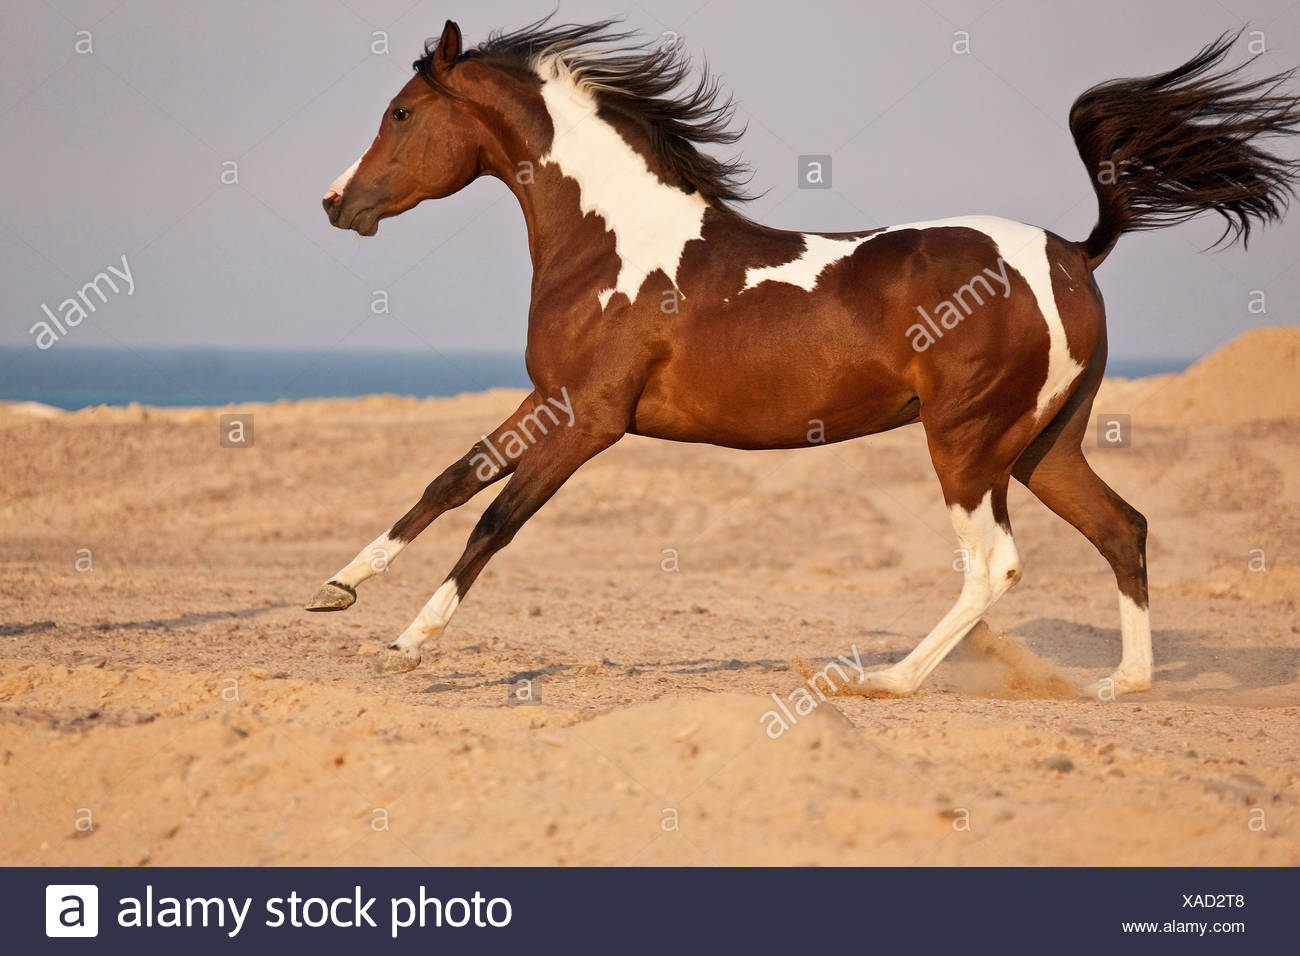 Arabian Horse Galloping Sand Stock Photo Alamy